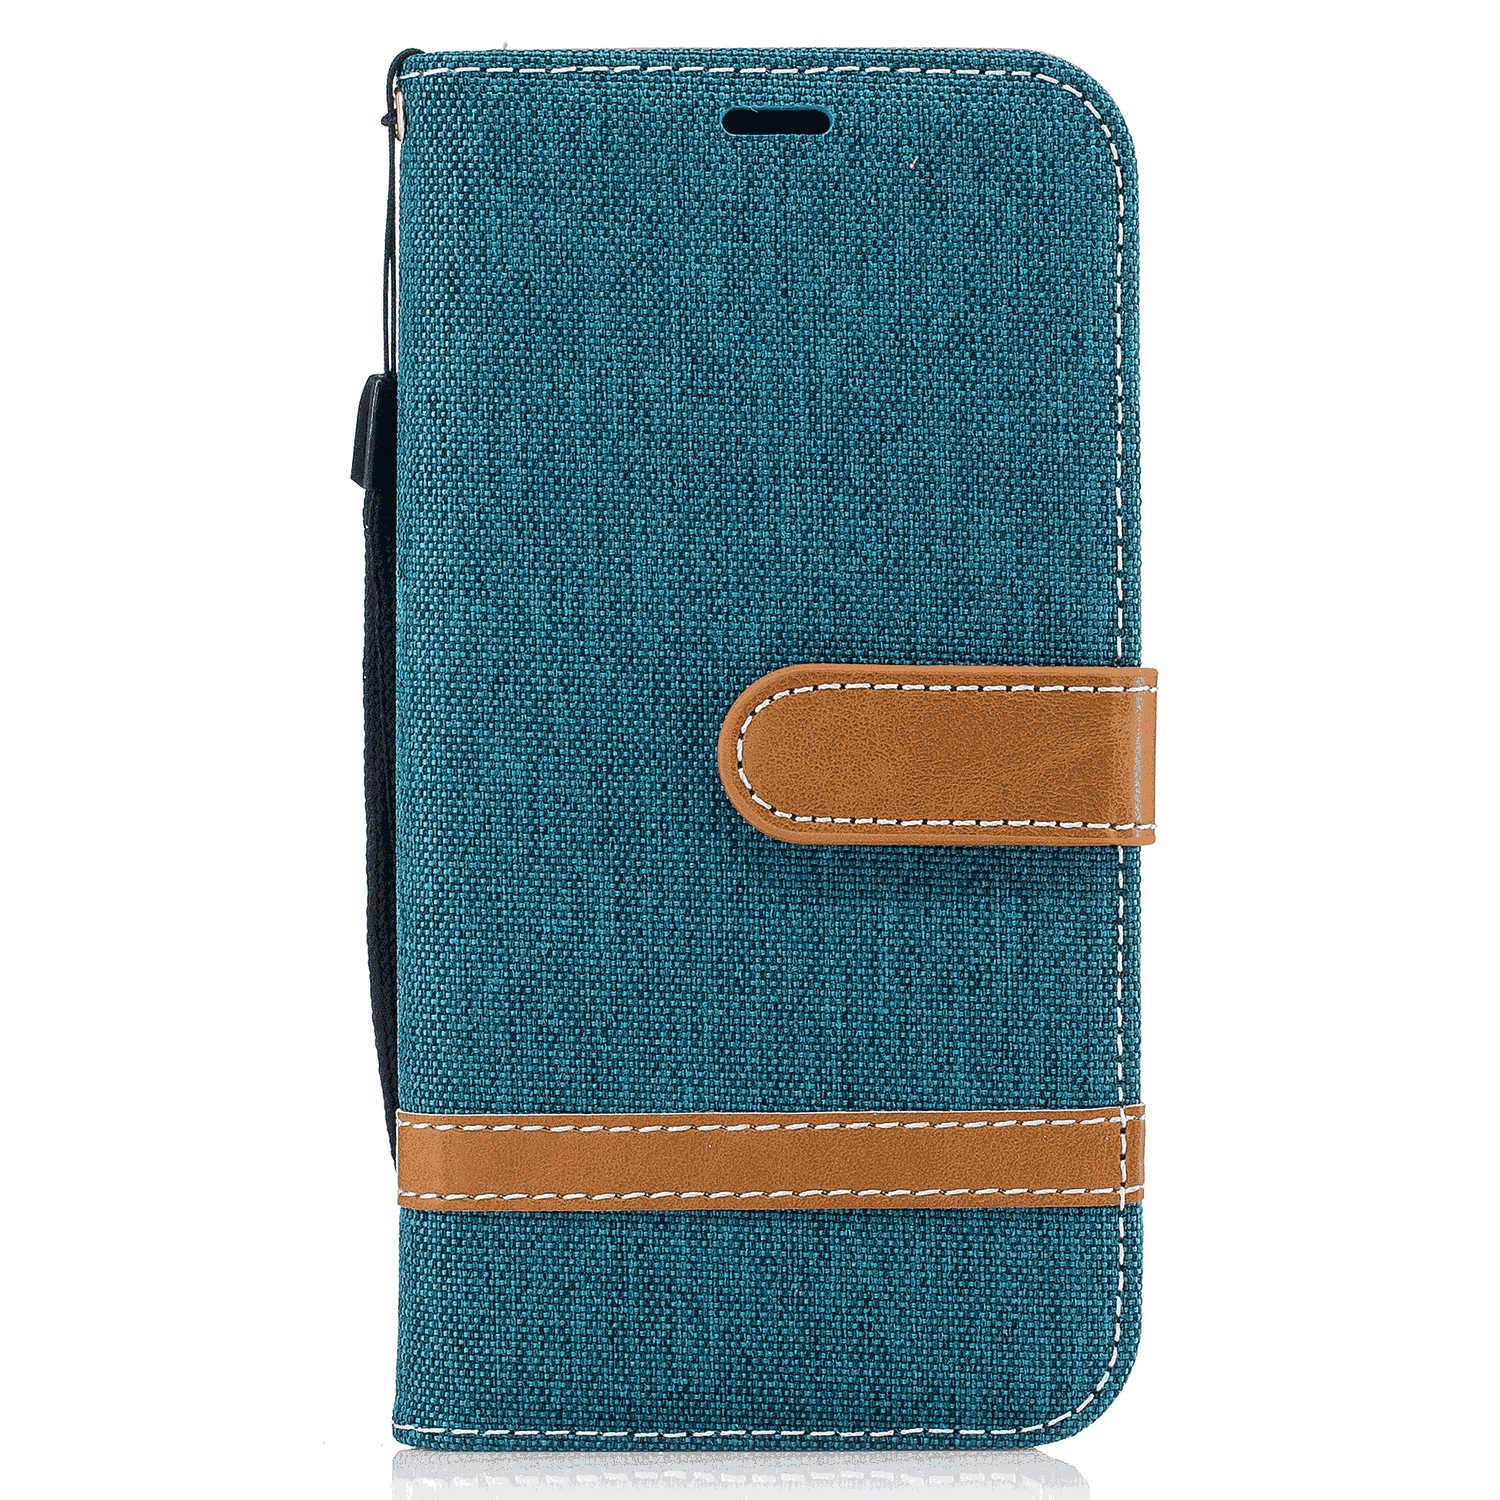 iPhone 7 Flip Case Cover for iPhone 7 Leather Mobile Phone case Kickstand Extra-Protective Business Card Holders with Free Waterproof-Bag Classical